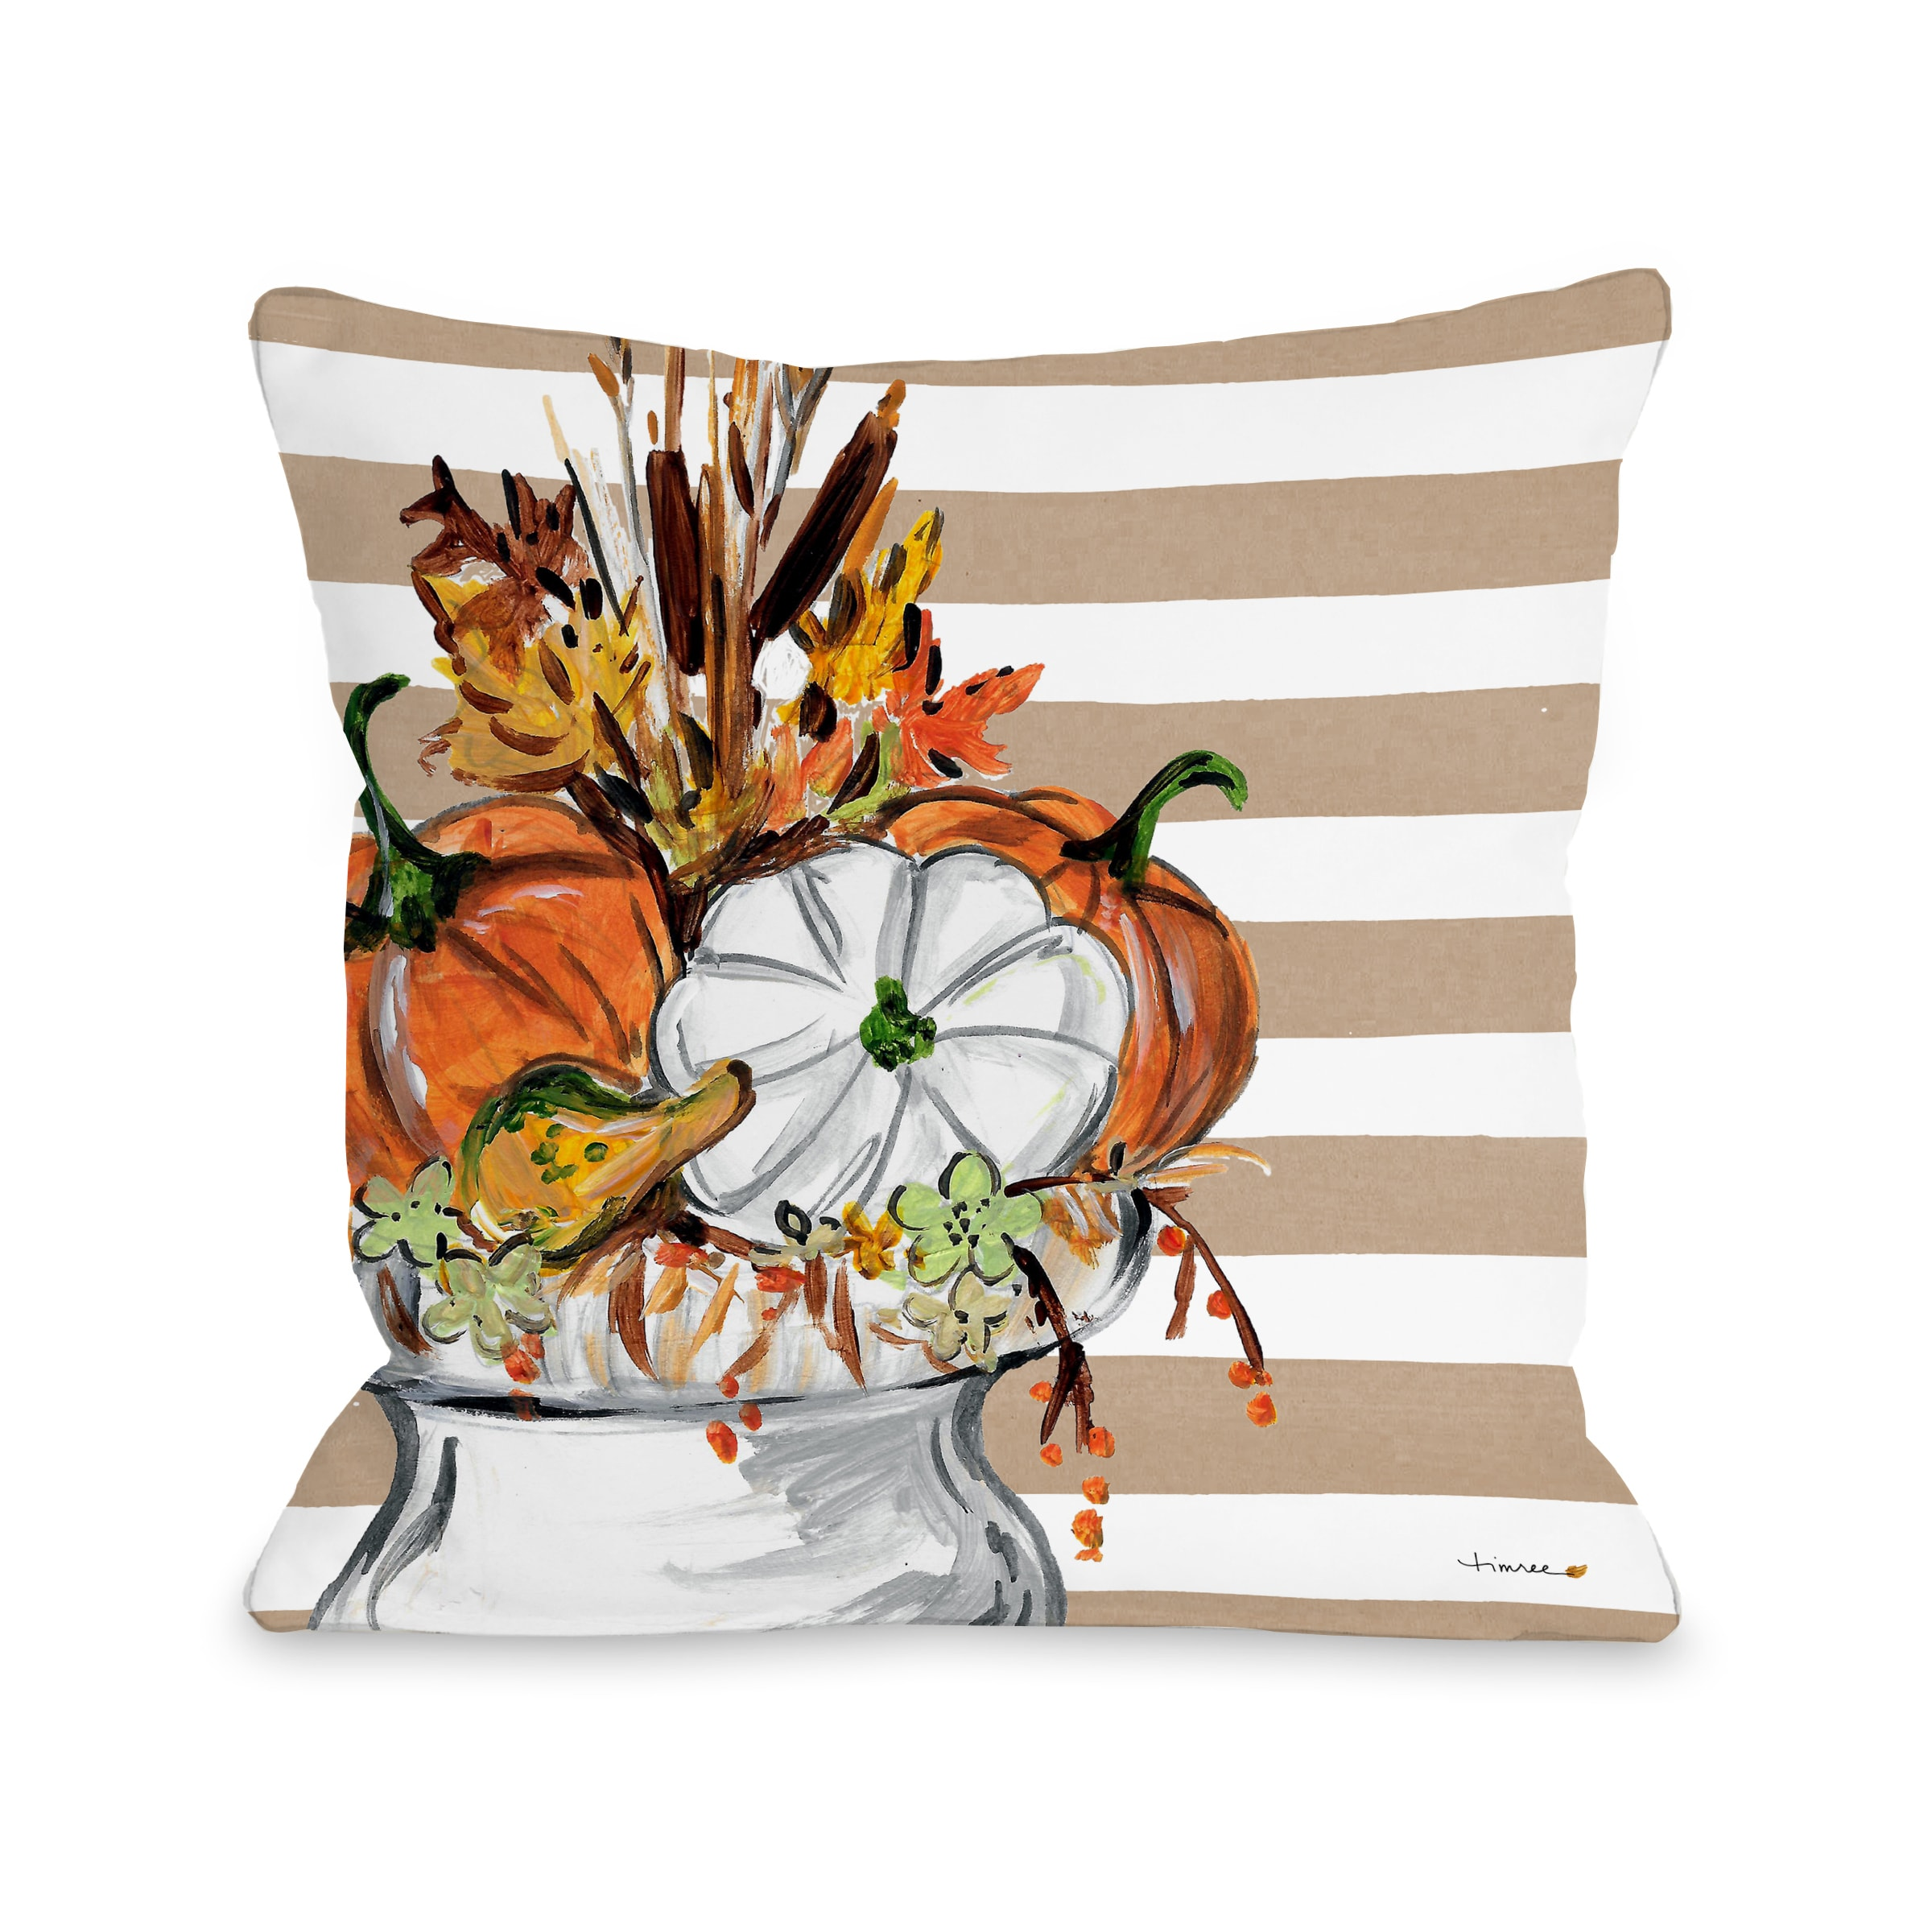 Fall Vase - Tan 18x18 Pillow by Timree